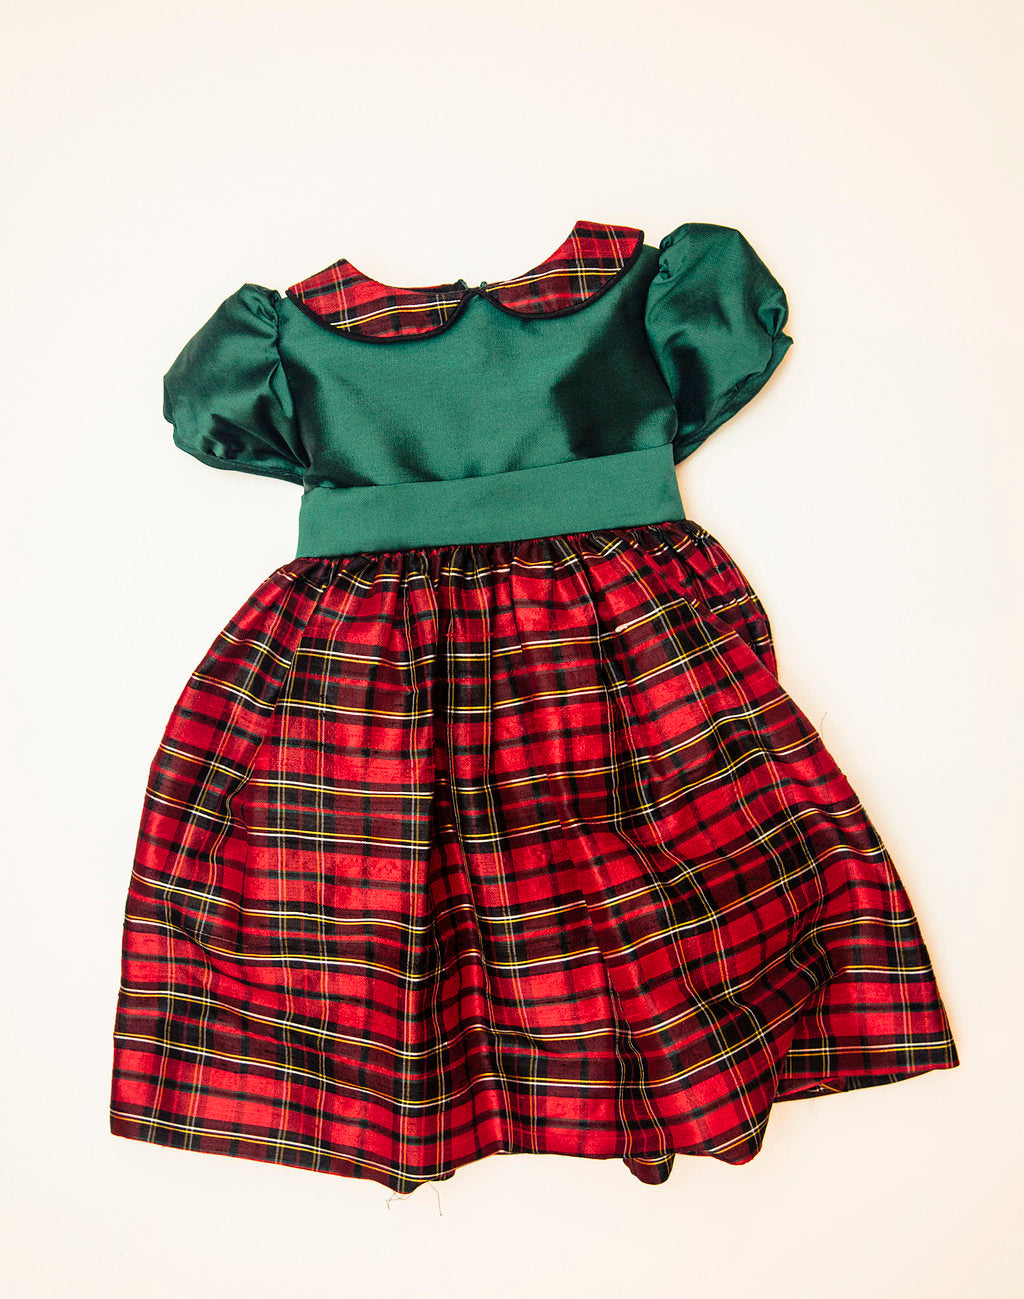 Green and Holiday Plaid Party Dress (12 Months through 5)